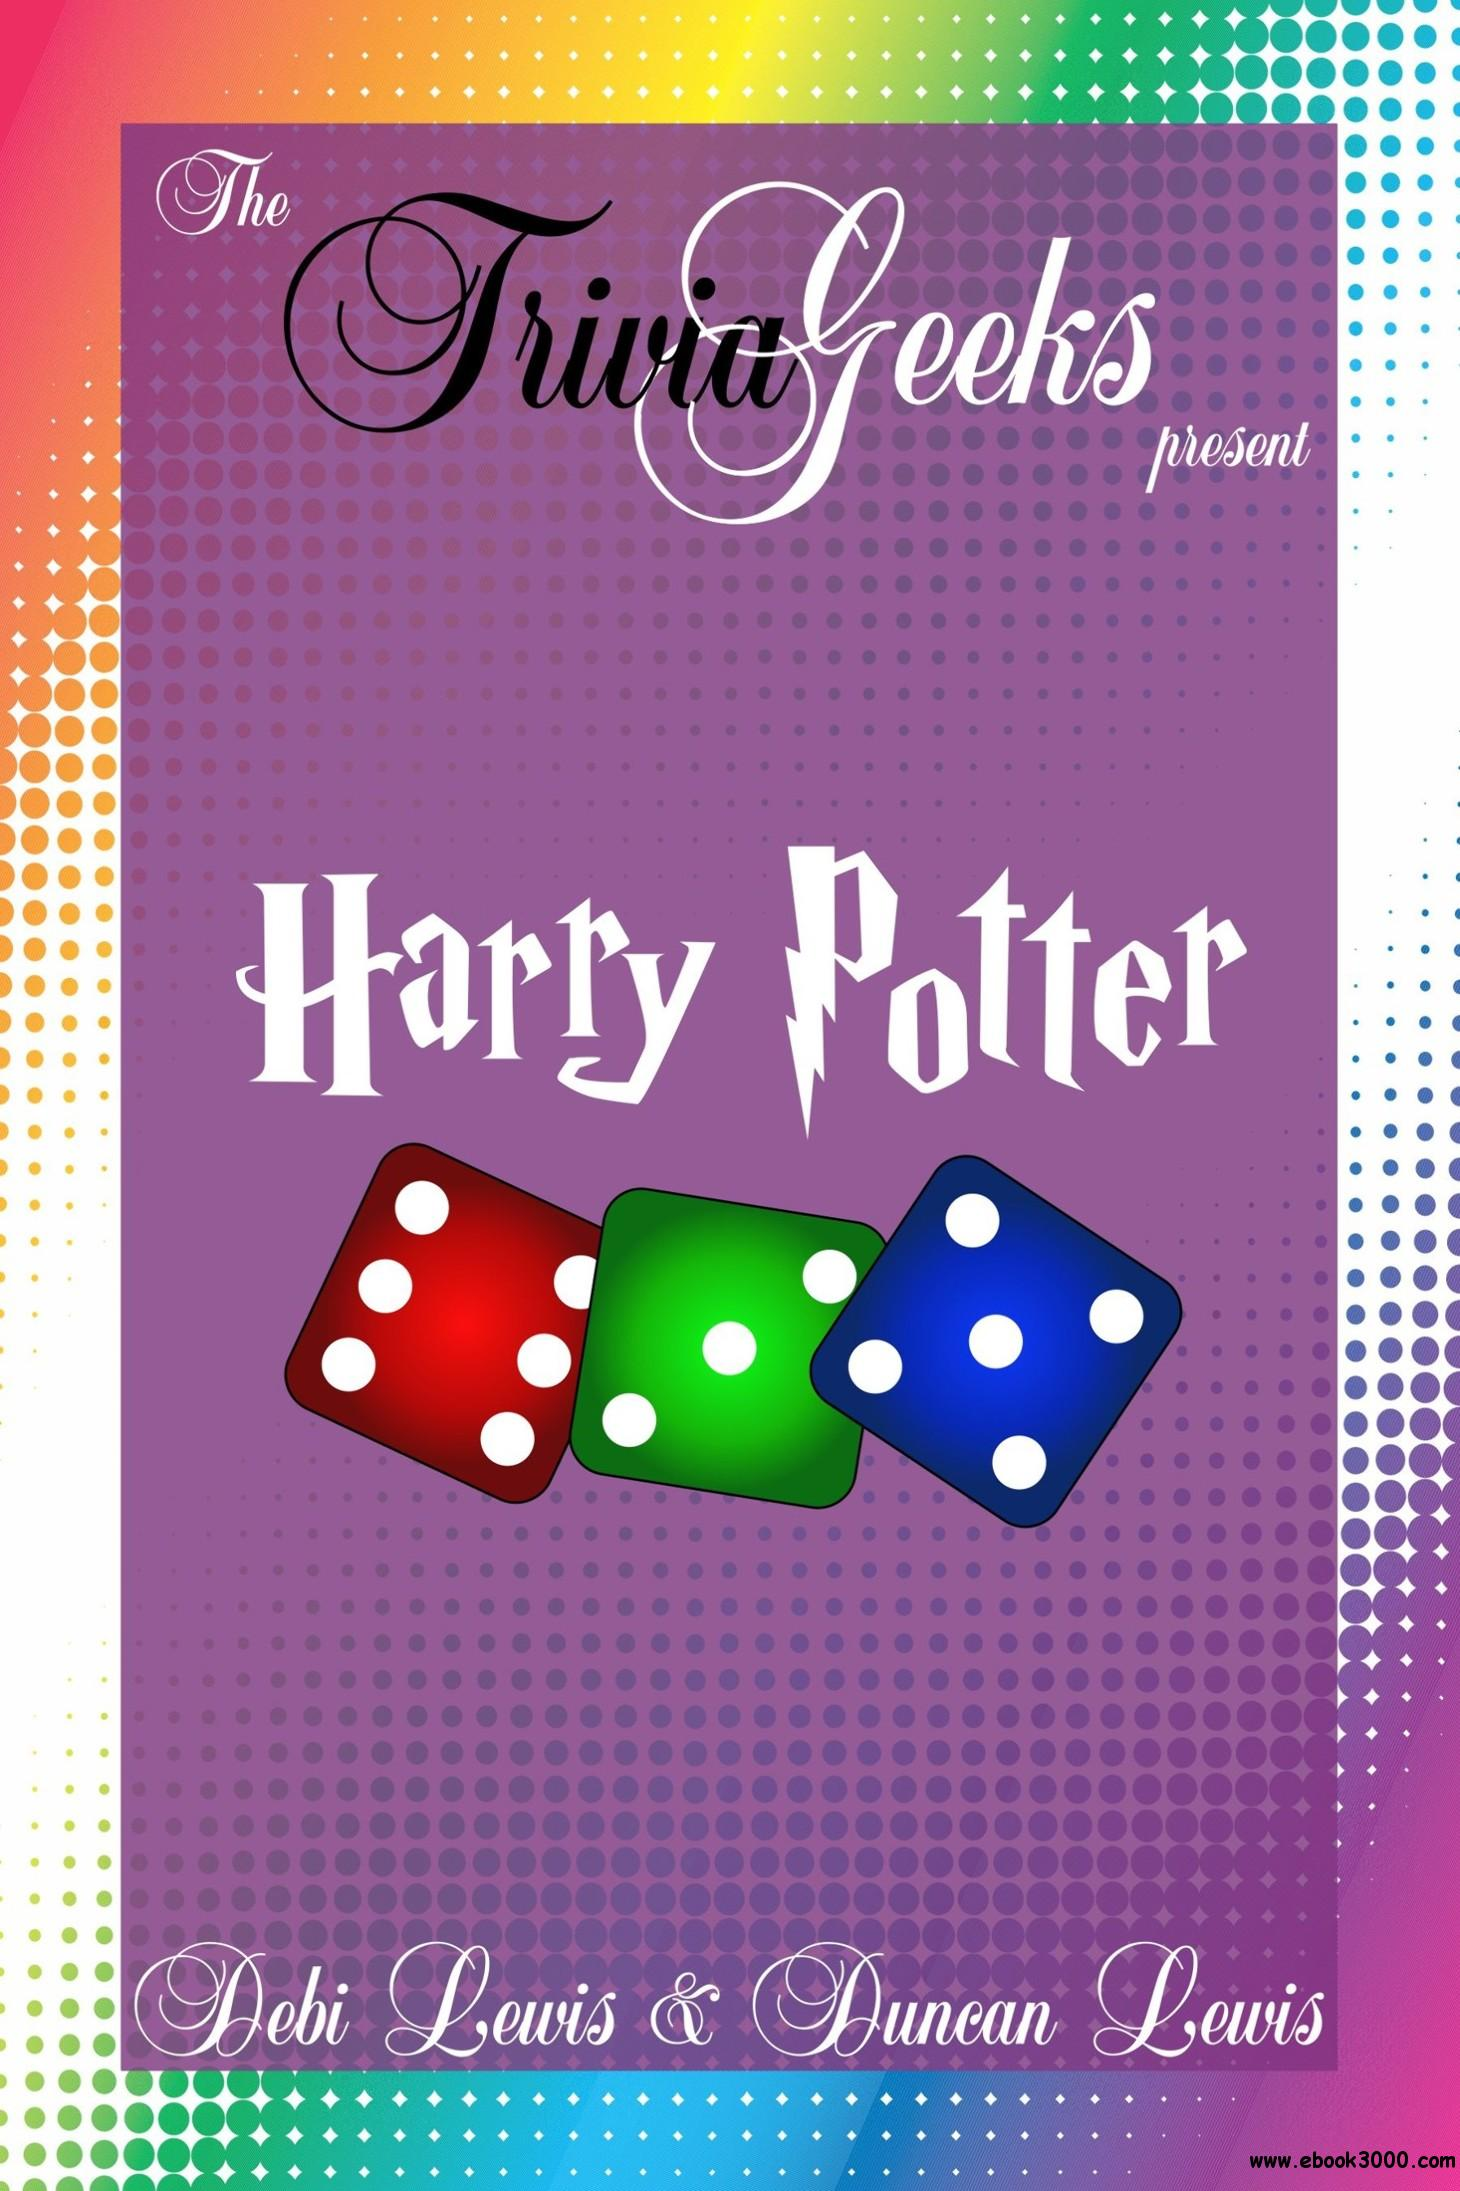 Harry Potter (The Trivia Geeks Present)